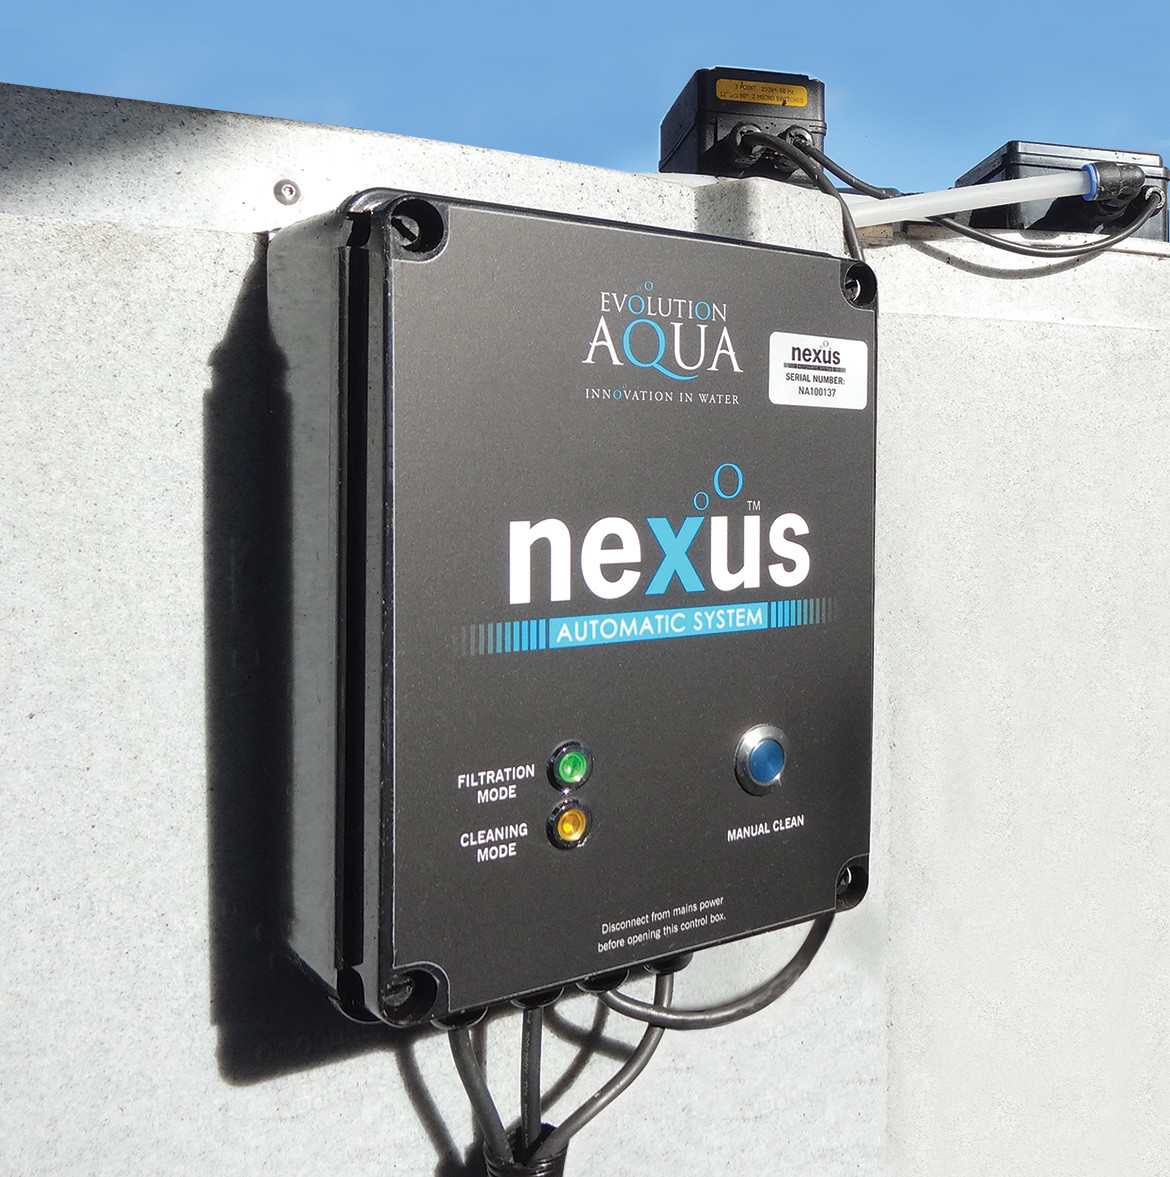 Nexus AUTOMATED 320  GRAVITY FED SYSTEM TO BE INSTALLED ON THE NEXUS 320